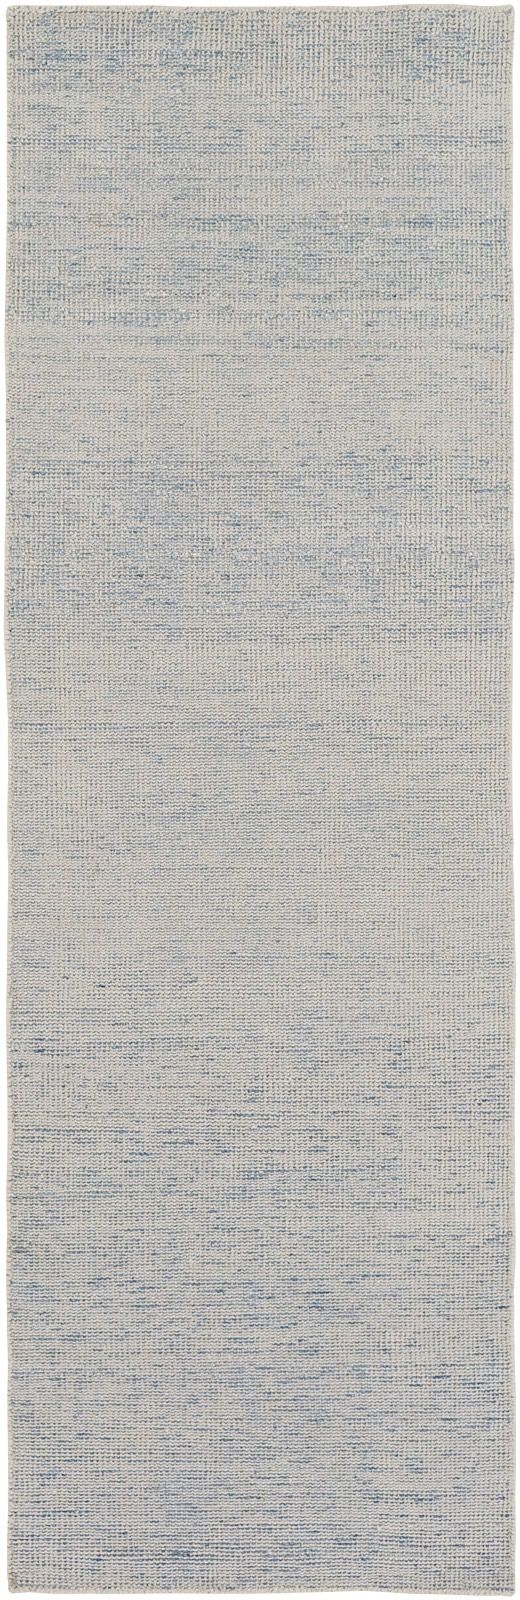 surya mirabella solid/striped area rug collection